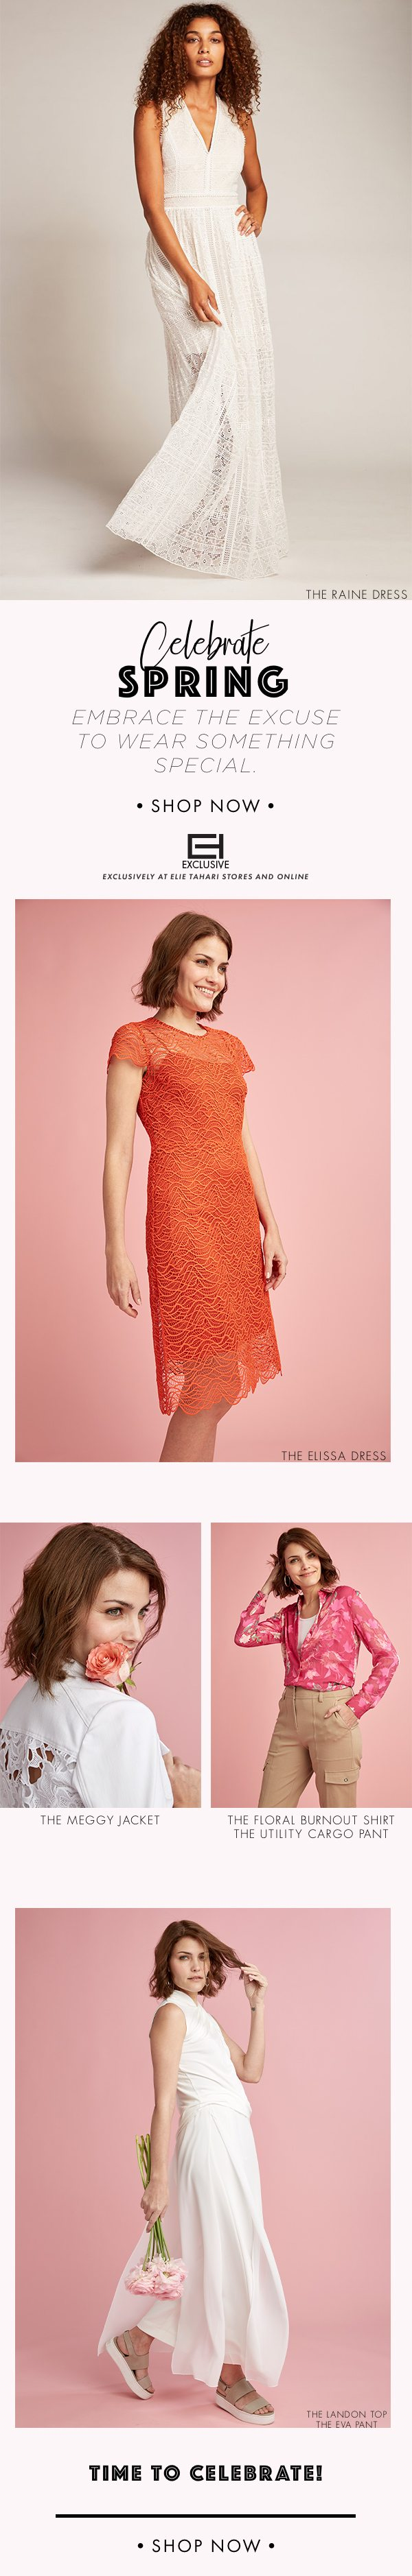 Scent Of Spring - Celebrate Spring, Embrace the Excuse To Wear Something Special.